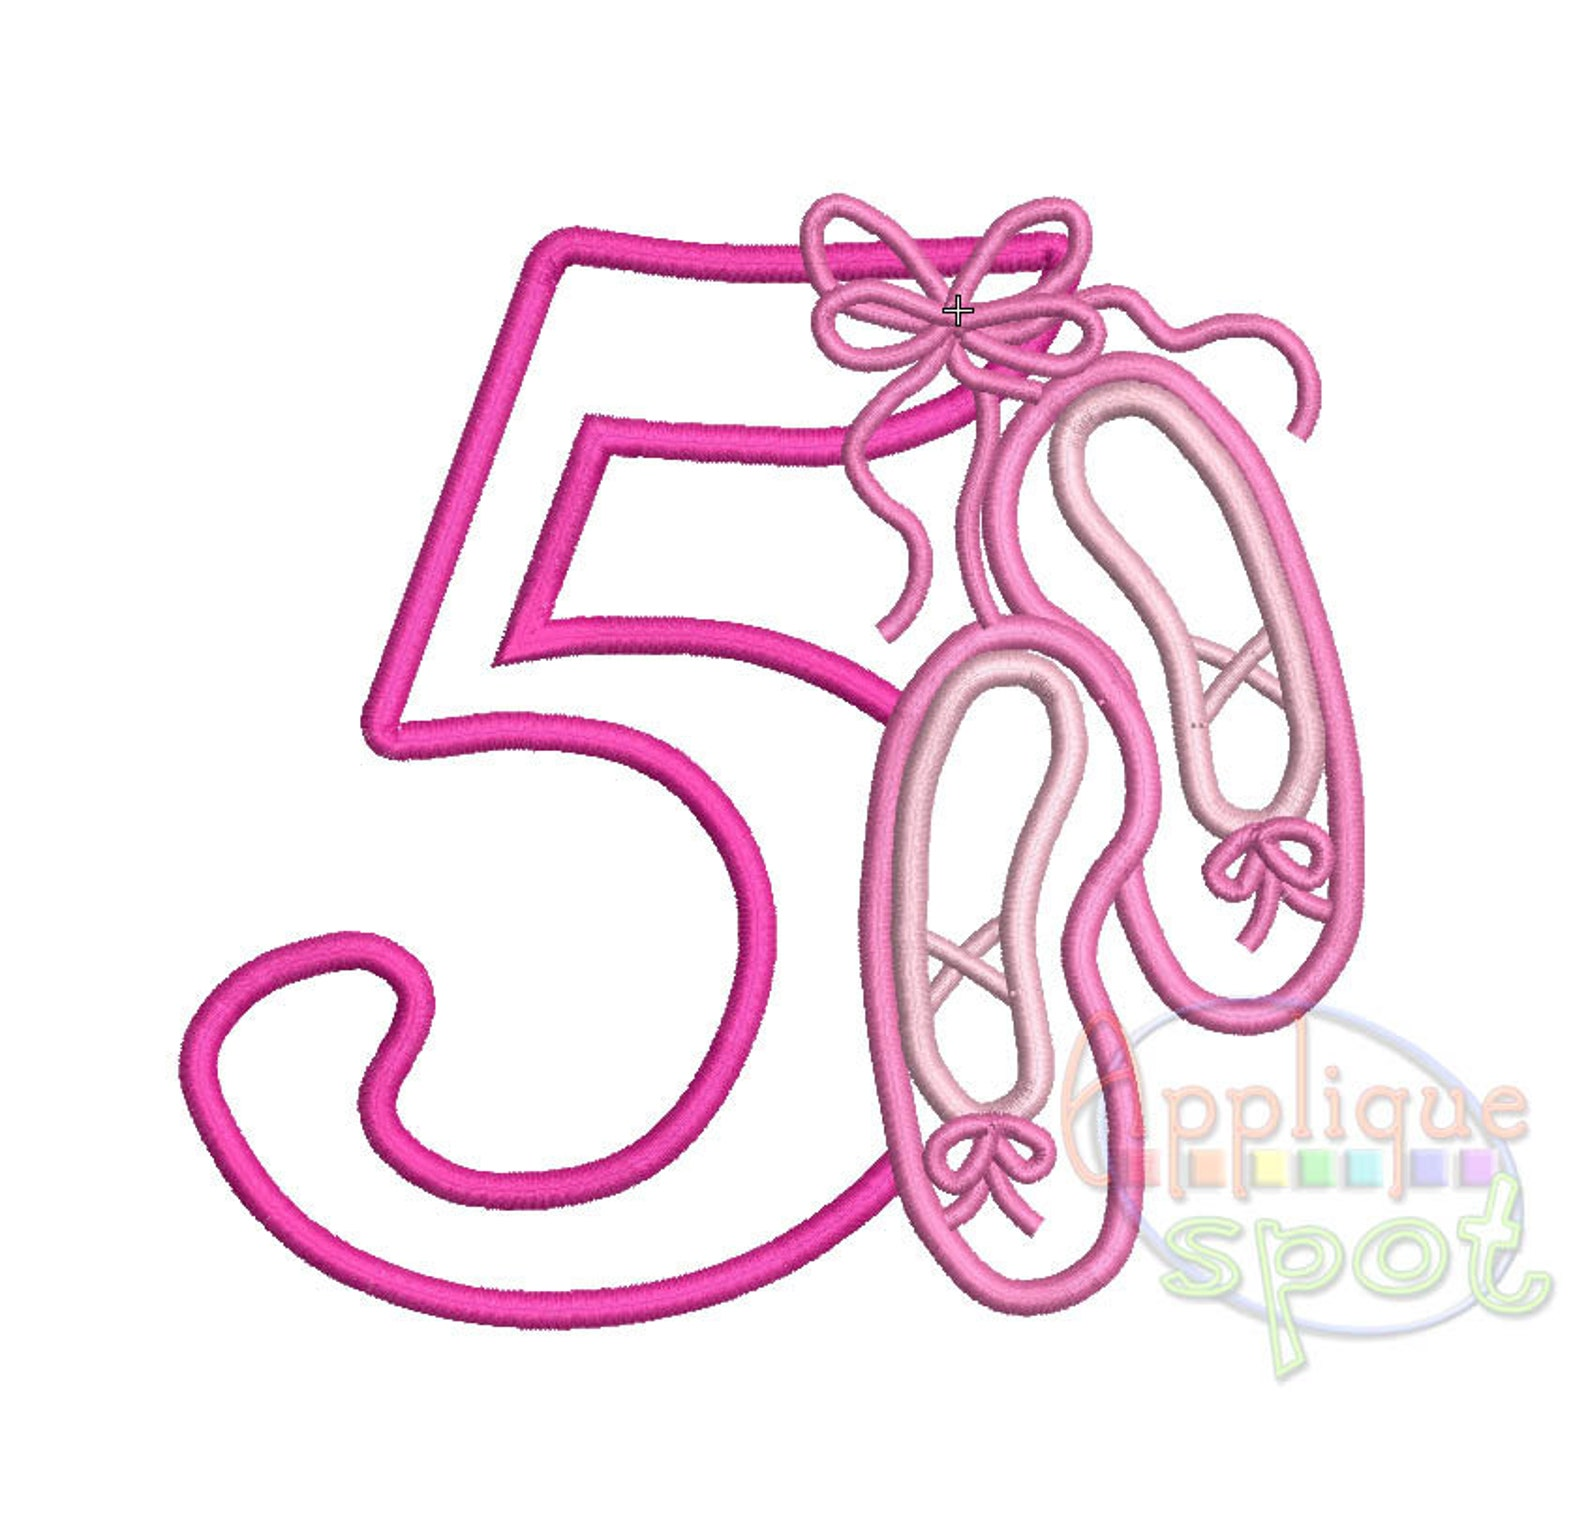 ballet numbers birthday baby girl - 4x4 5x7 6x10 applique design embroidery machine -instant download file